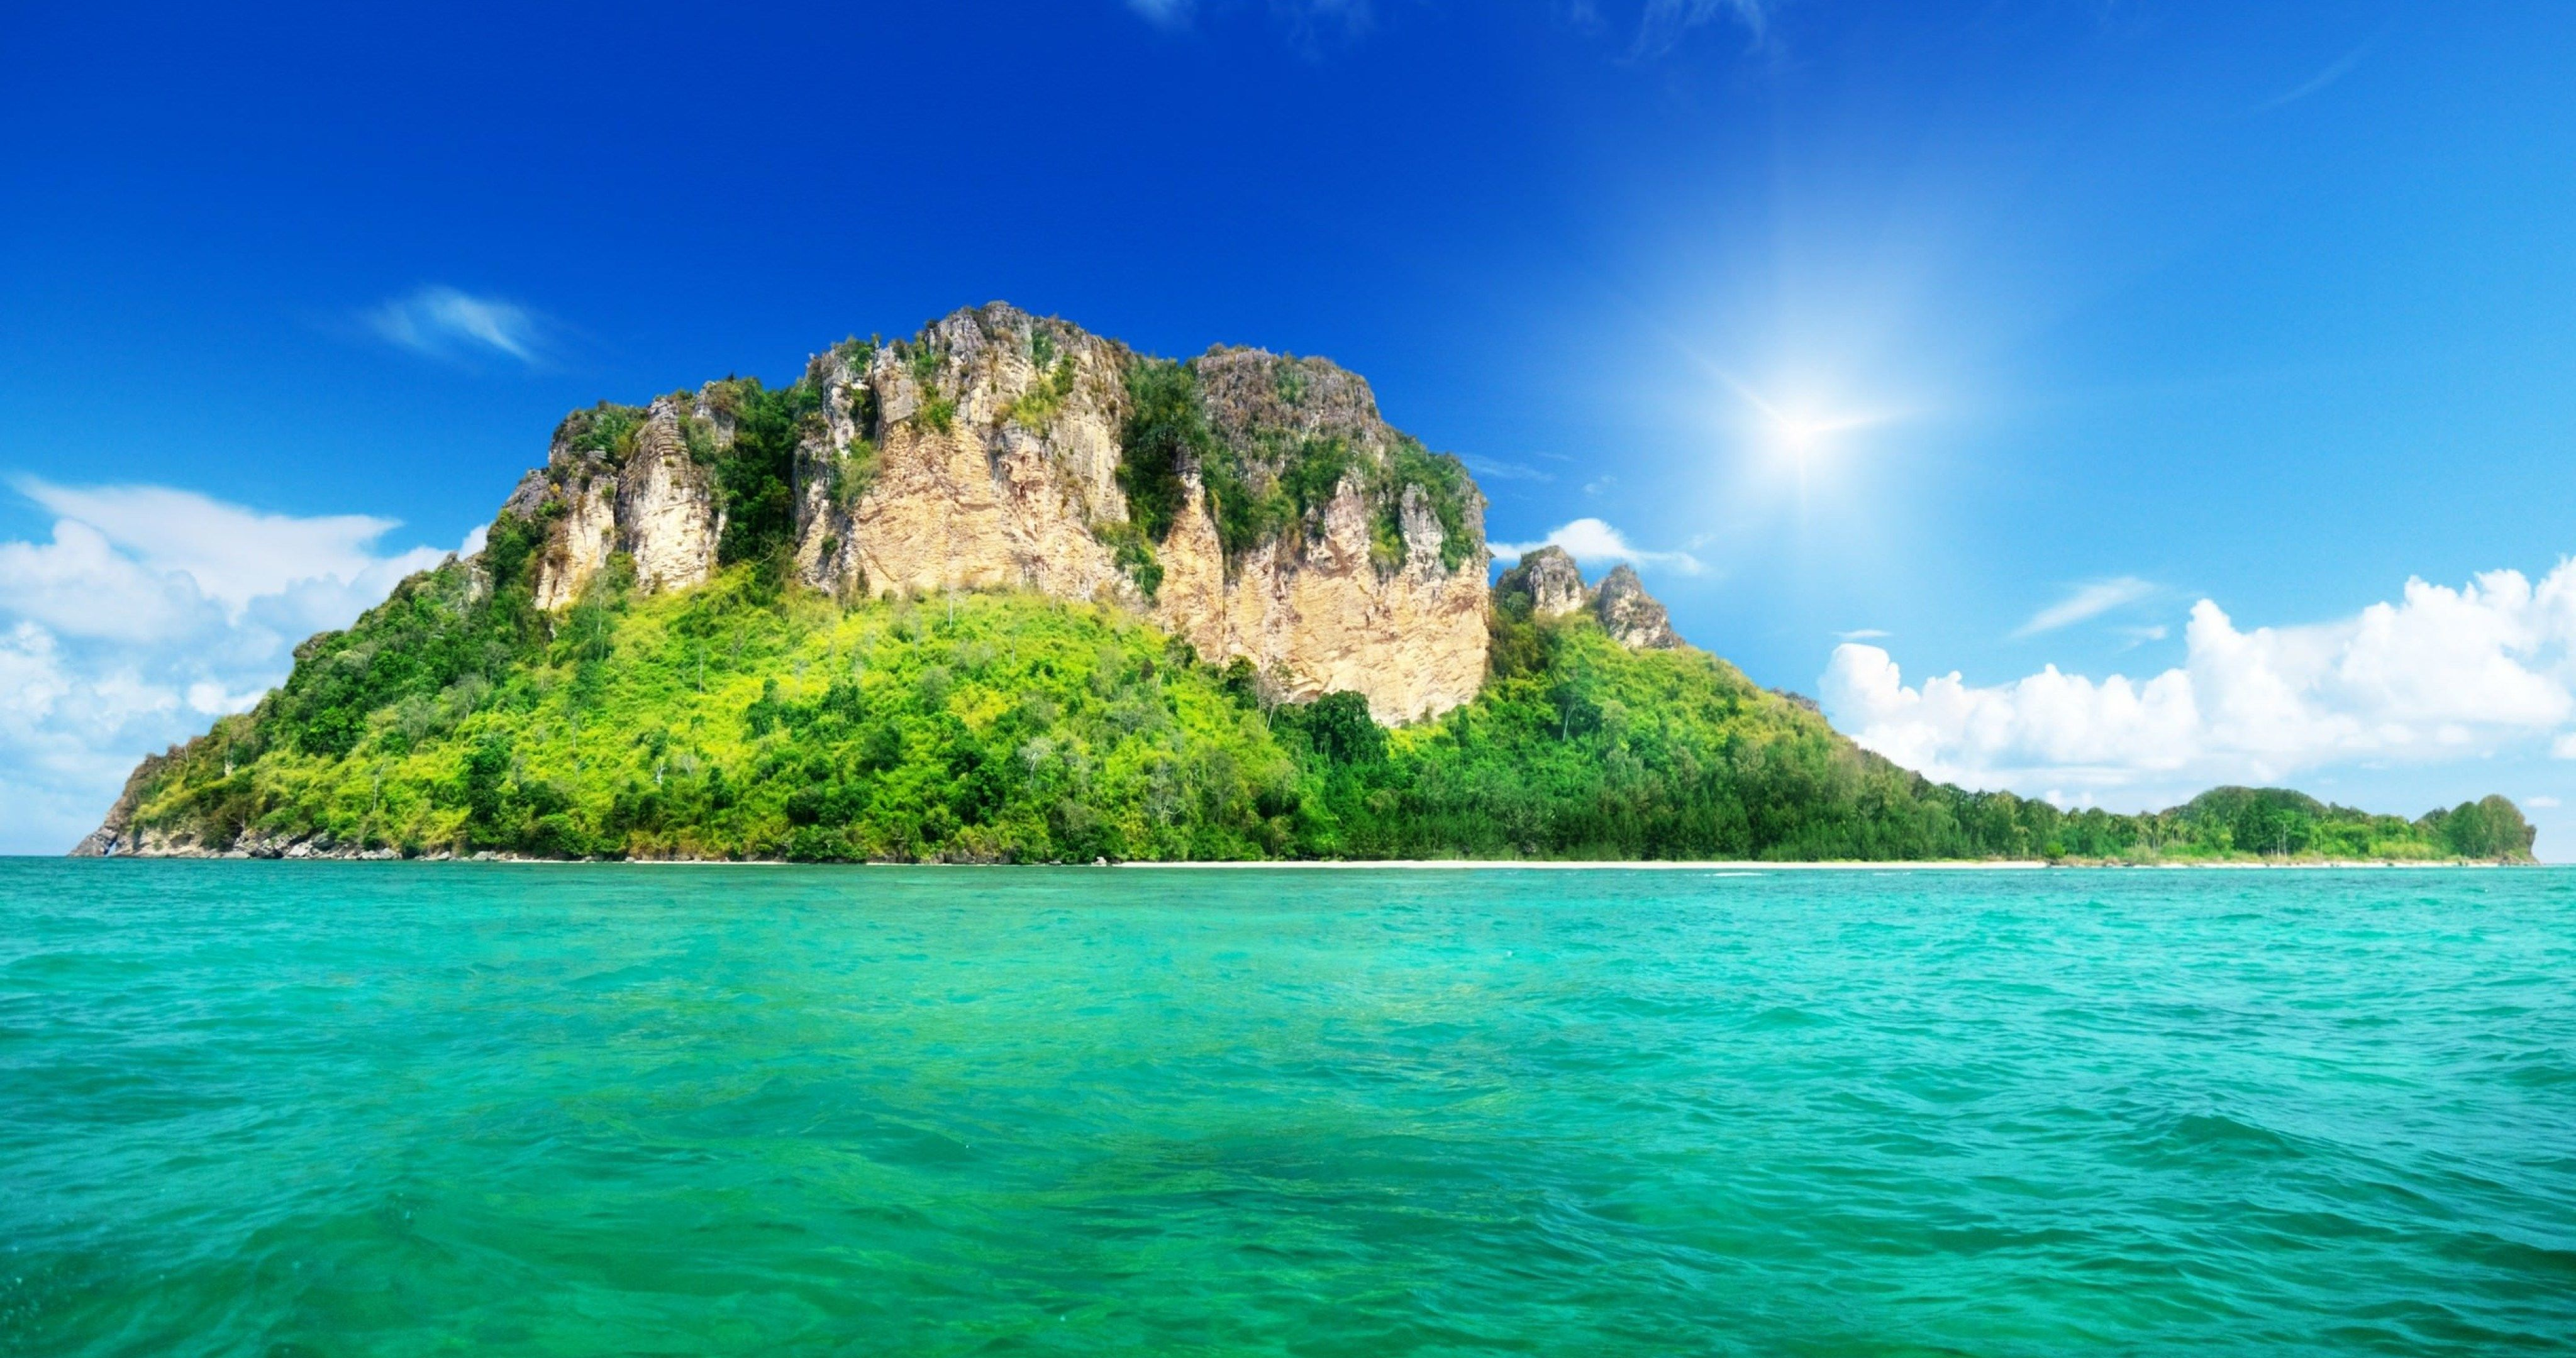 landscape nature island 4k ultra hd wallpaper (With images